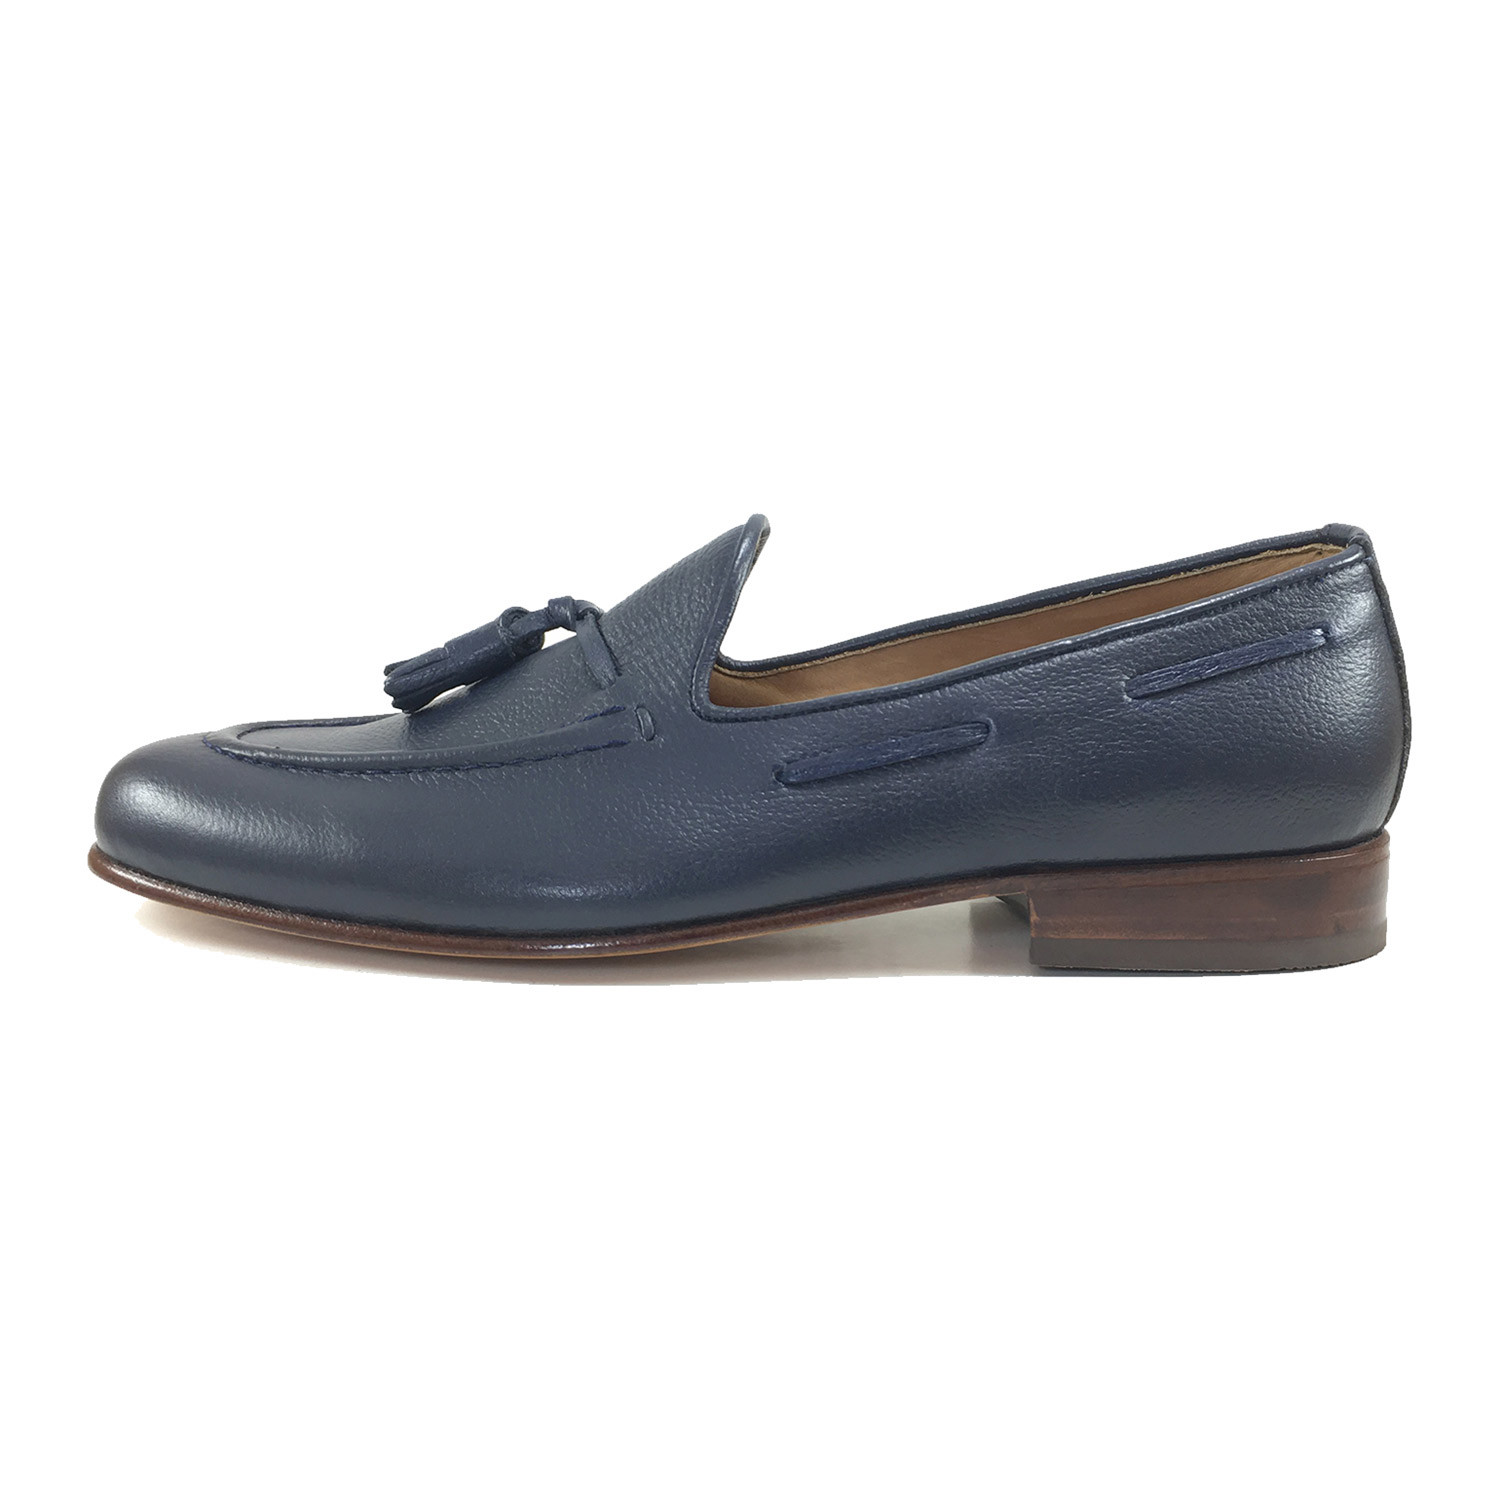 6b38c6659bc Armada Tassel Loafer    Navy (US  7.5) - Caballero - Touch of Modern